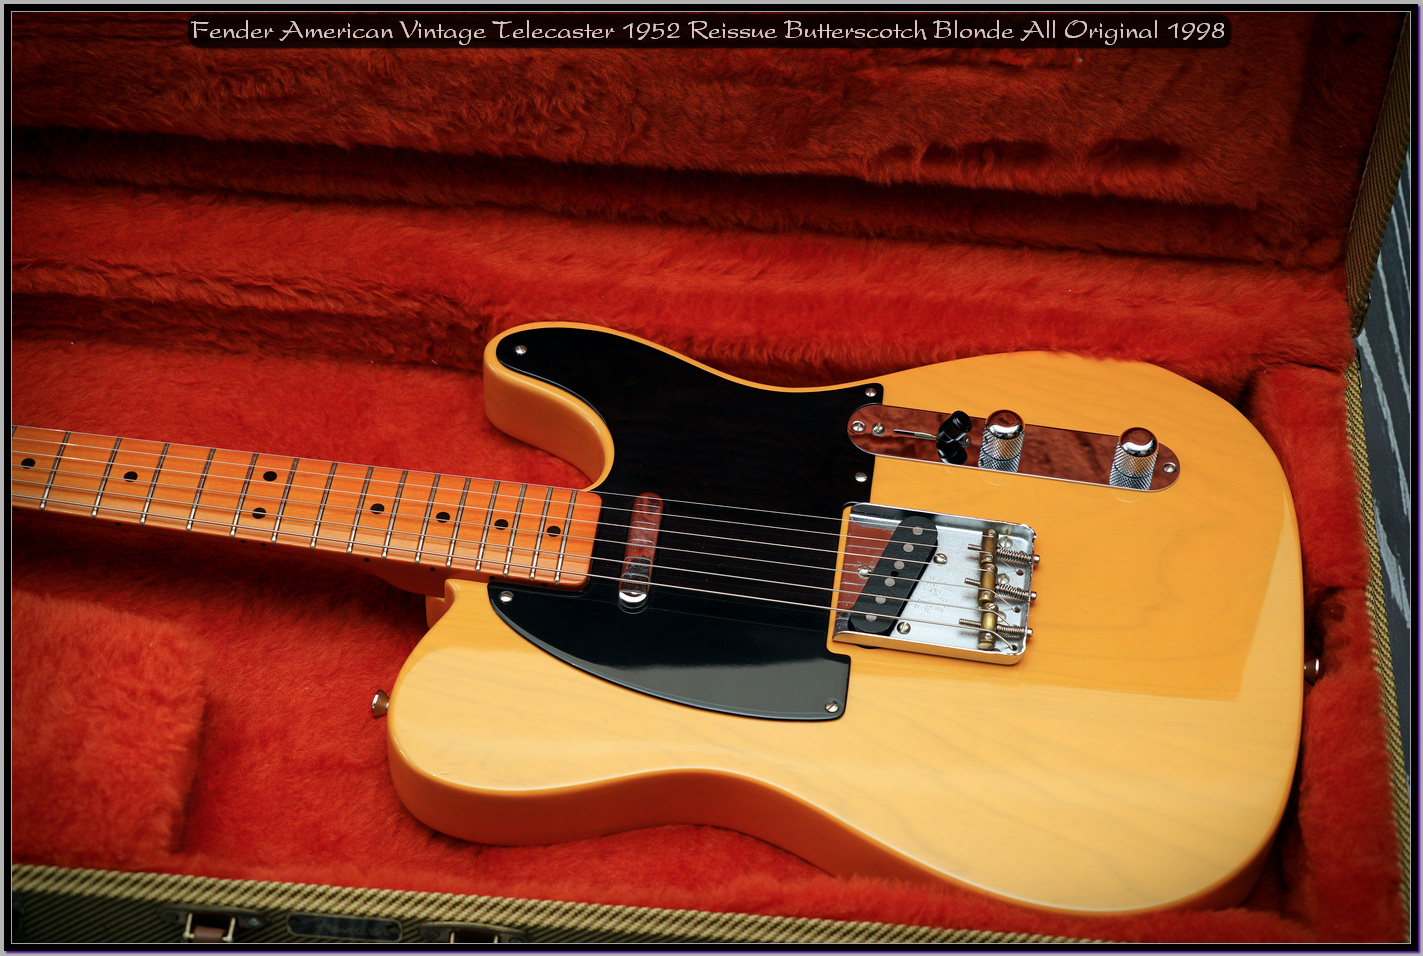 Fender American Vintage Telecaster 1952 Reissue Butterscotch Blonde All Original 1998 10_x1440.jpg